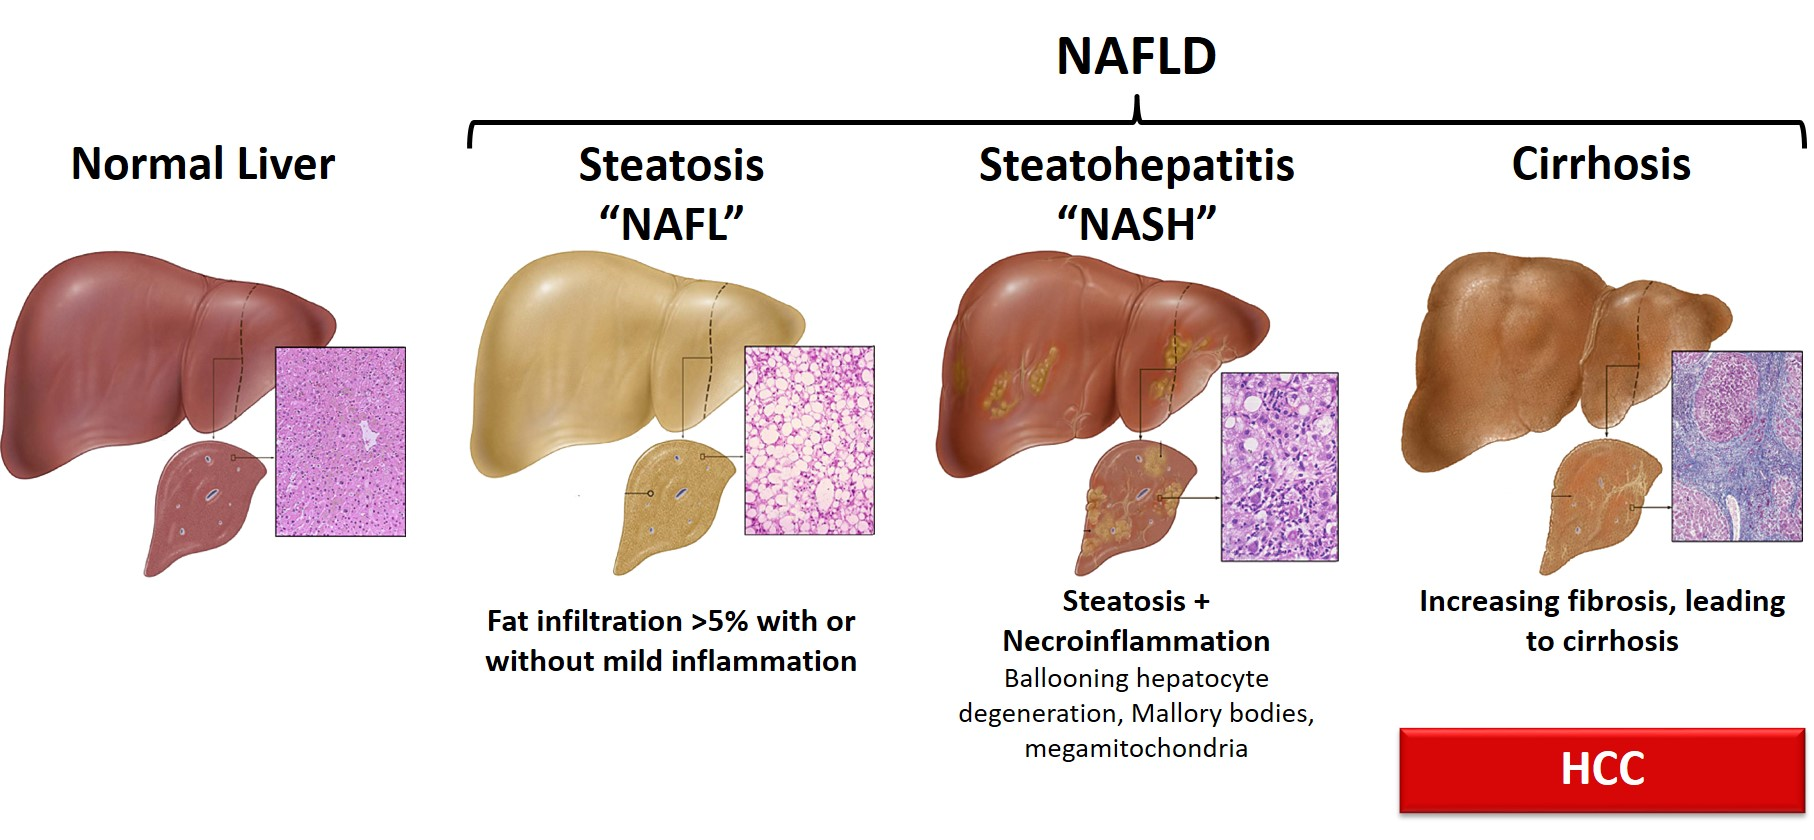 Clinical Update on the Management of Fatty Liver Disease in T2DM Patients